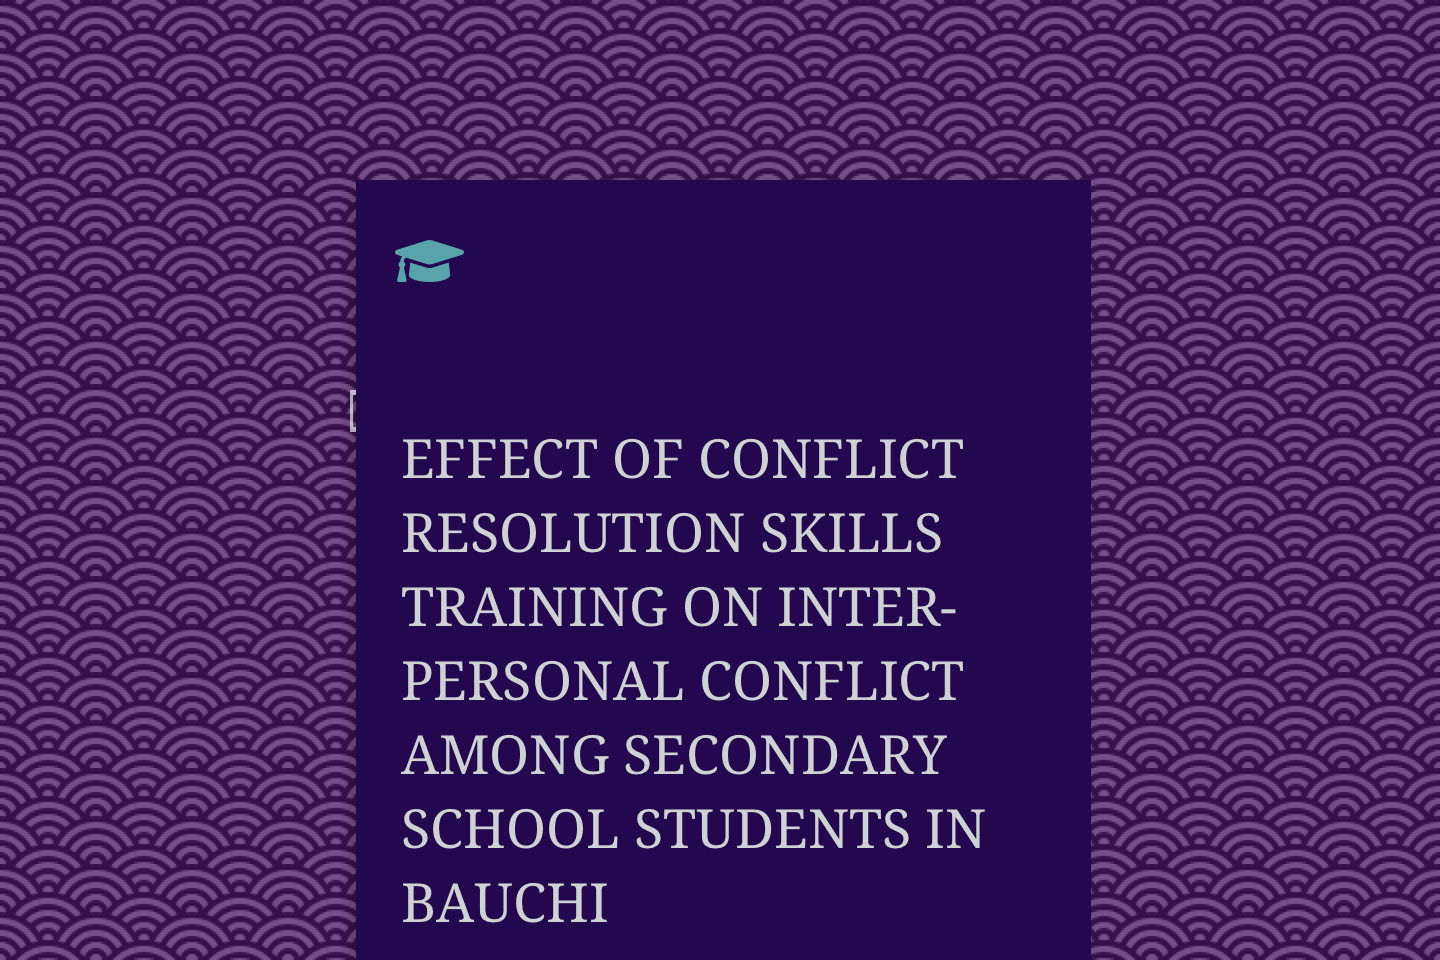 Effect Of Conflict Resolution Skills Training On Inter-Personal Conflict Among Secondary School Students In Bauchi